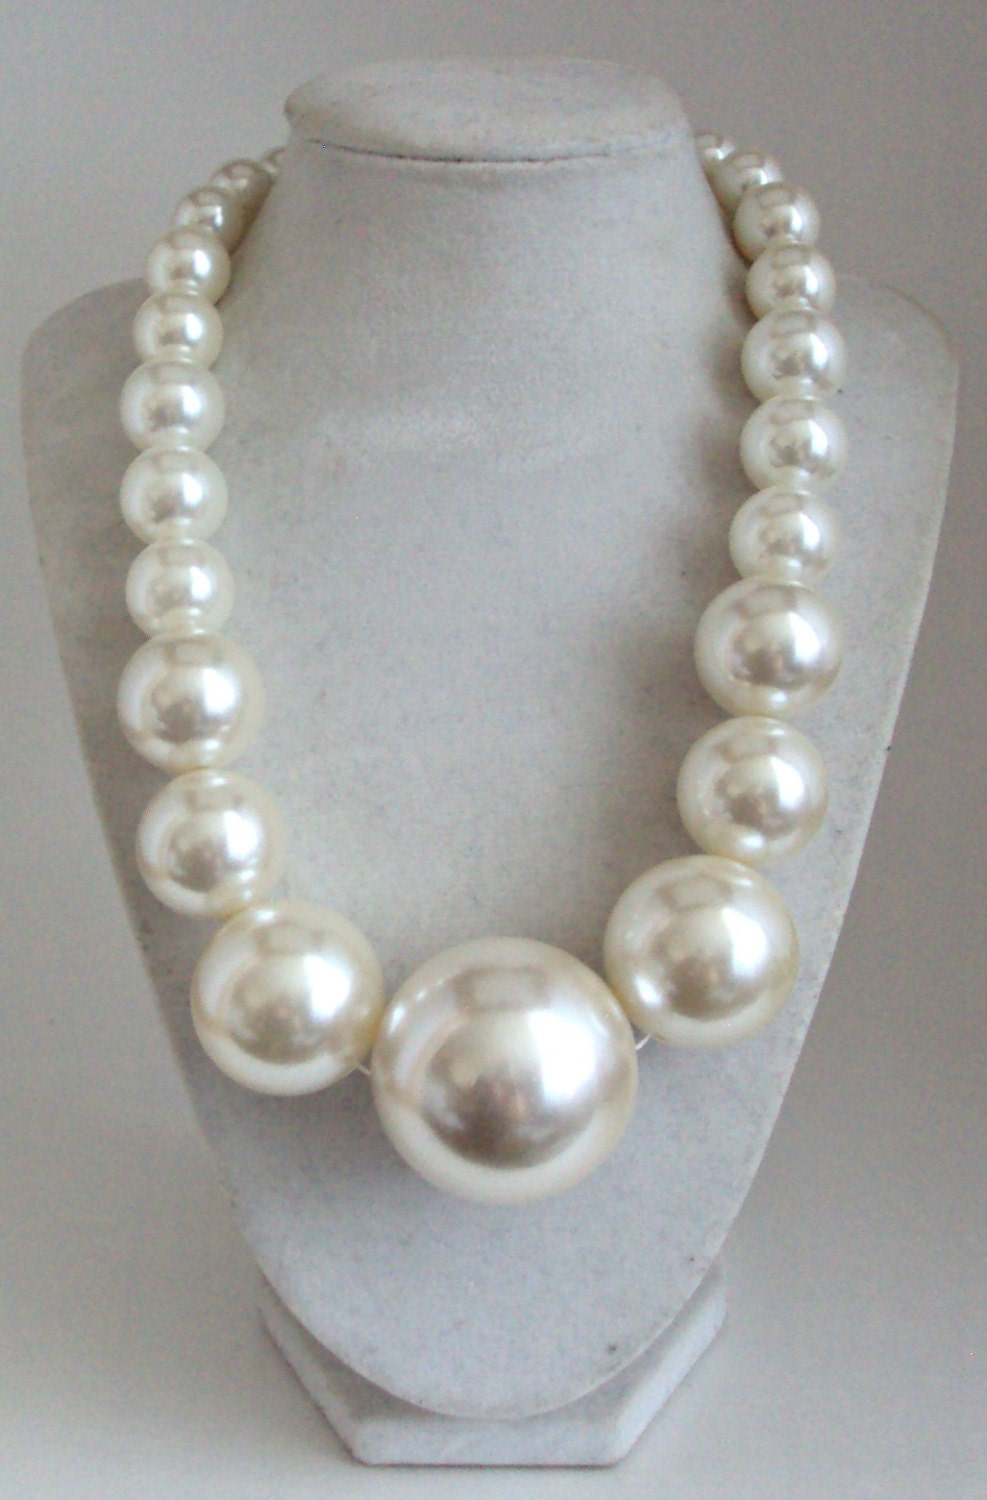 Buy low price, high quality big chunky necklaces with worldwide shipping on erlinelomantkgs831.ga